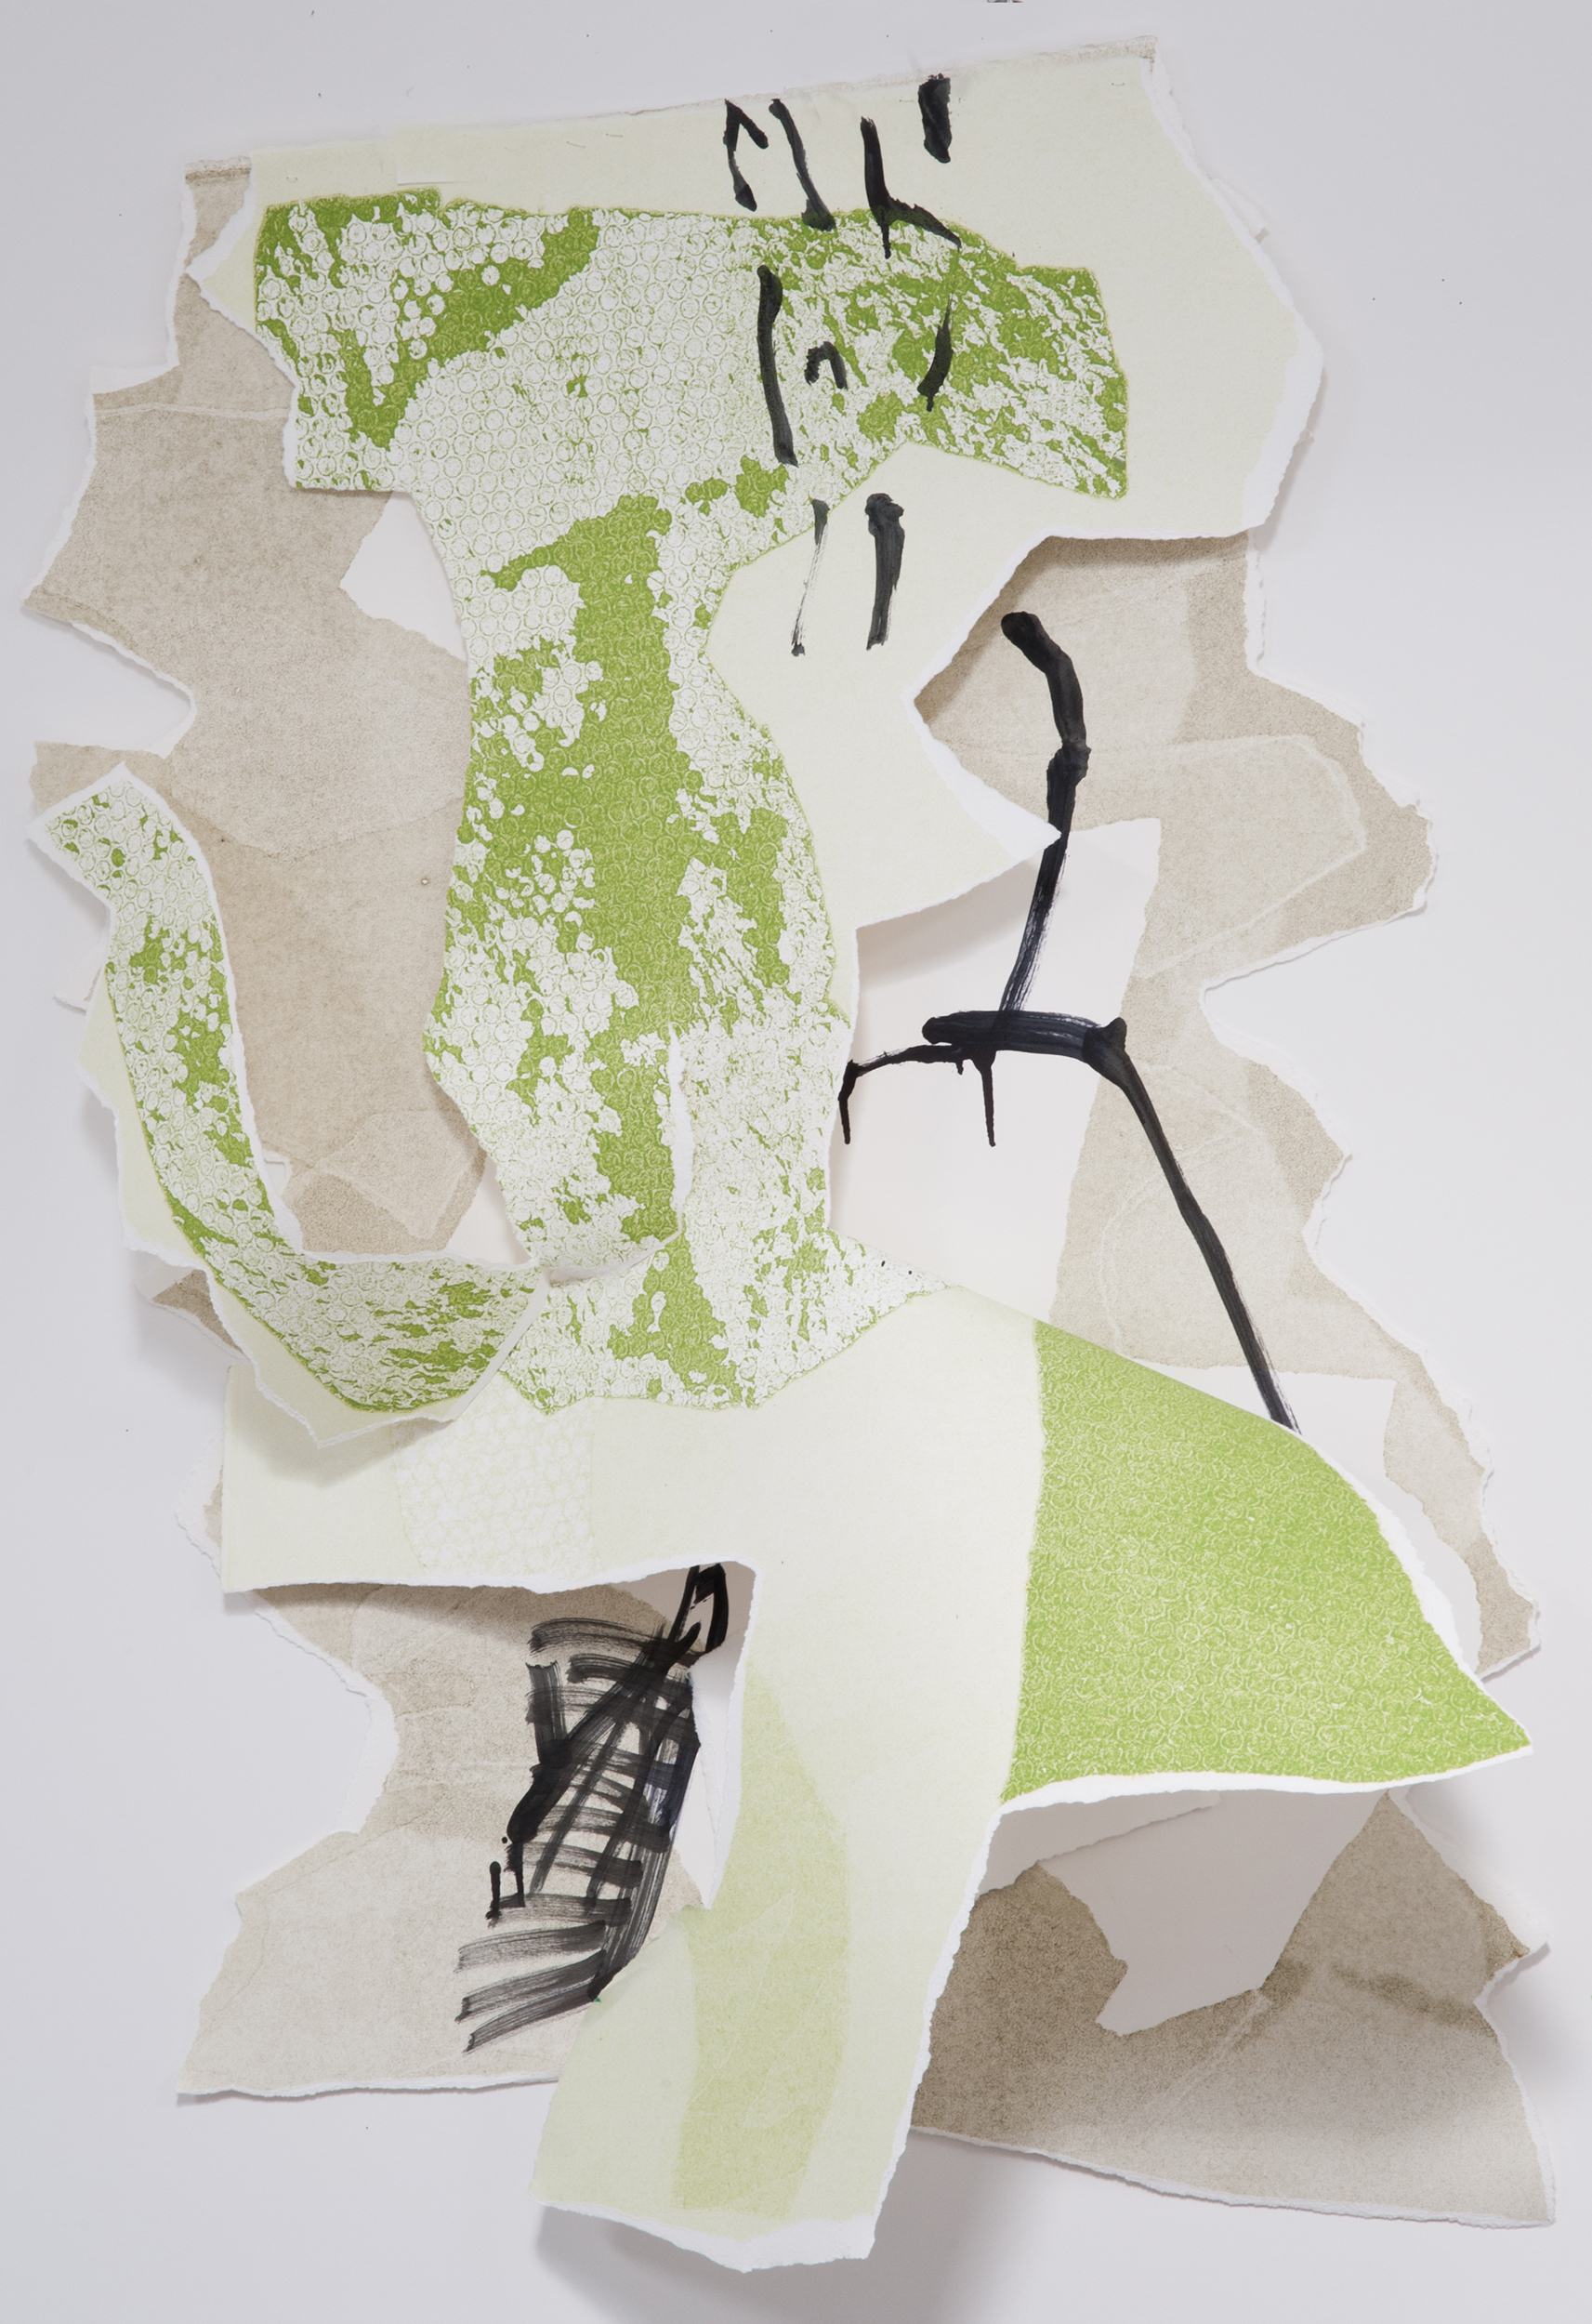 """Kay Harvey   """"About Ice Series 10"""" 2013. Collage, Oil on Paper. 44 x 34 x 9"""""""